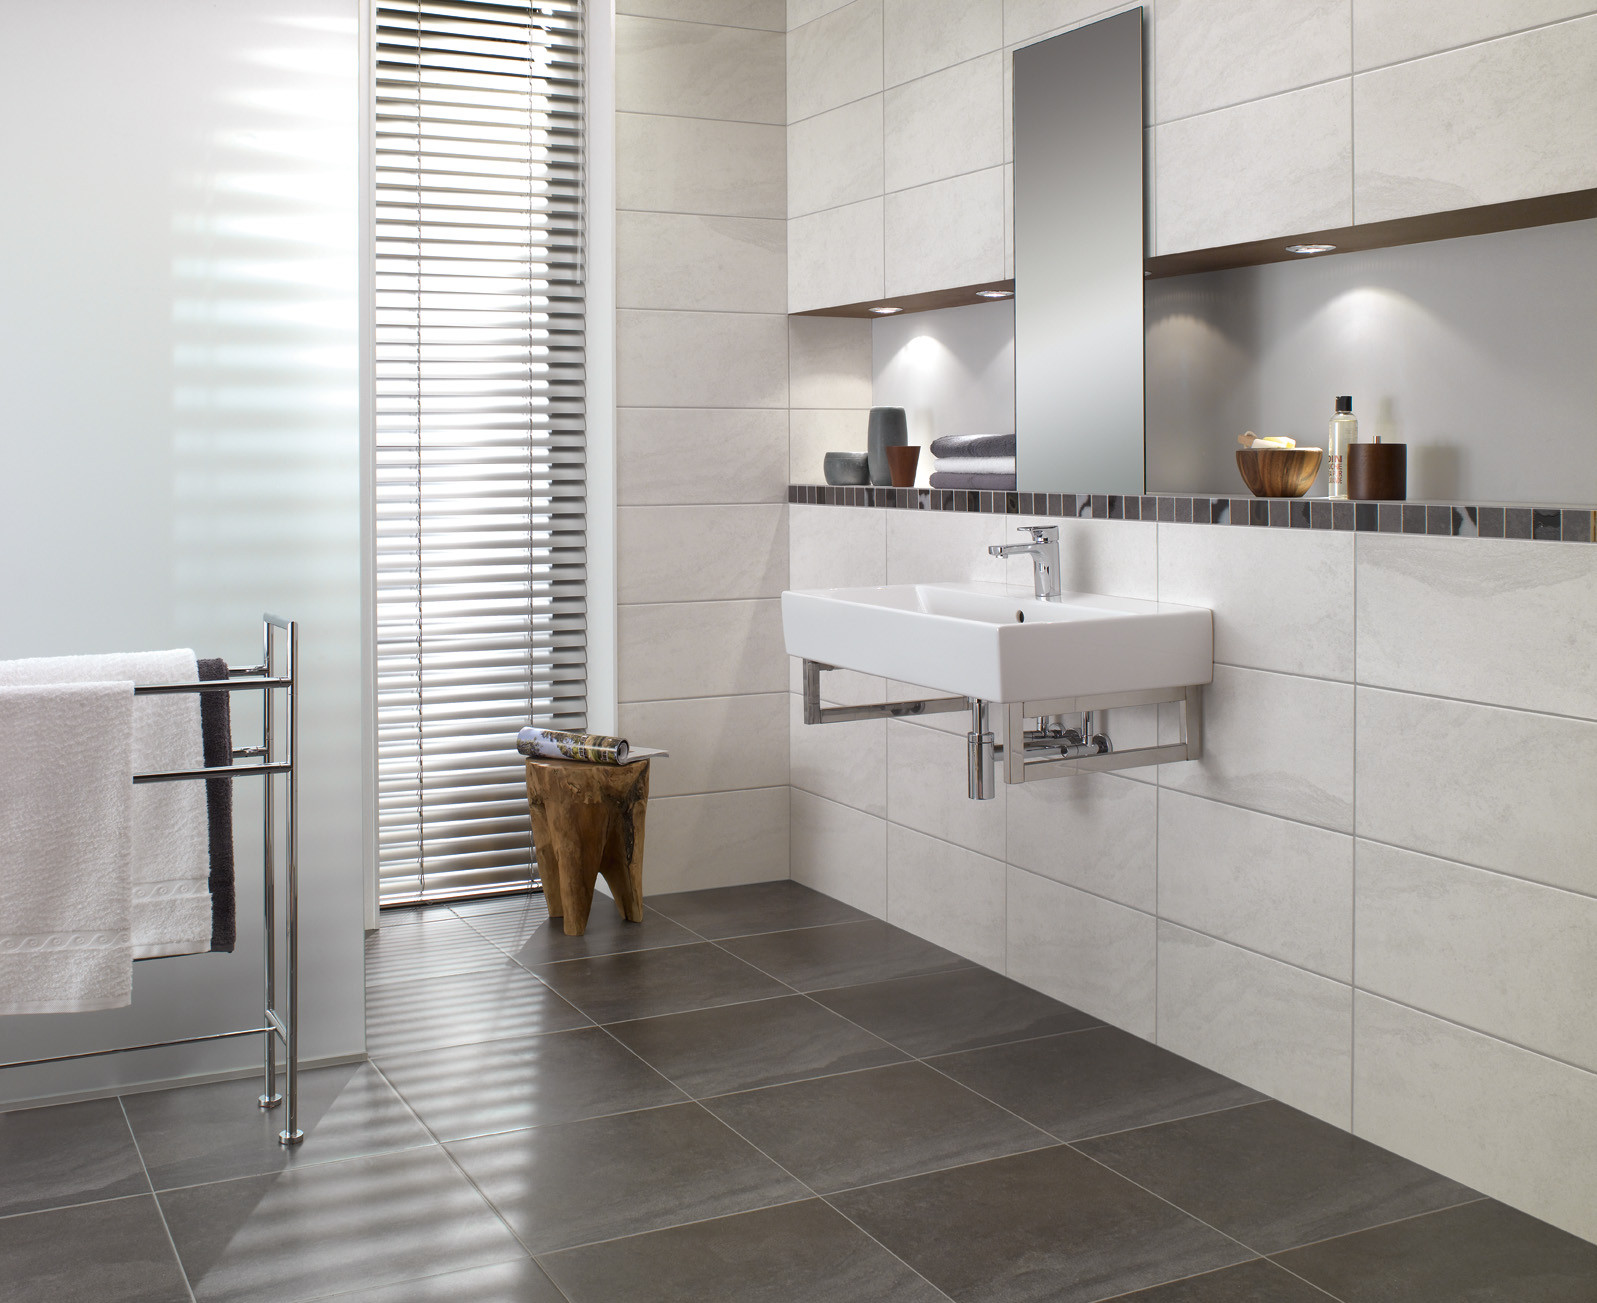 DESIGN SHAPES LIFE: Villeroy & Boch Launches Bathroom Design ...